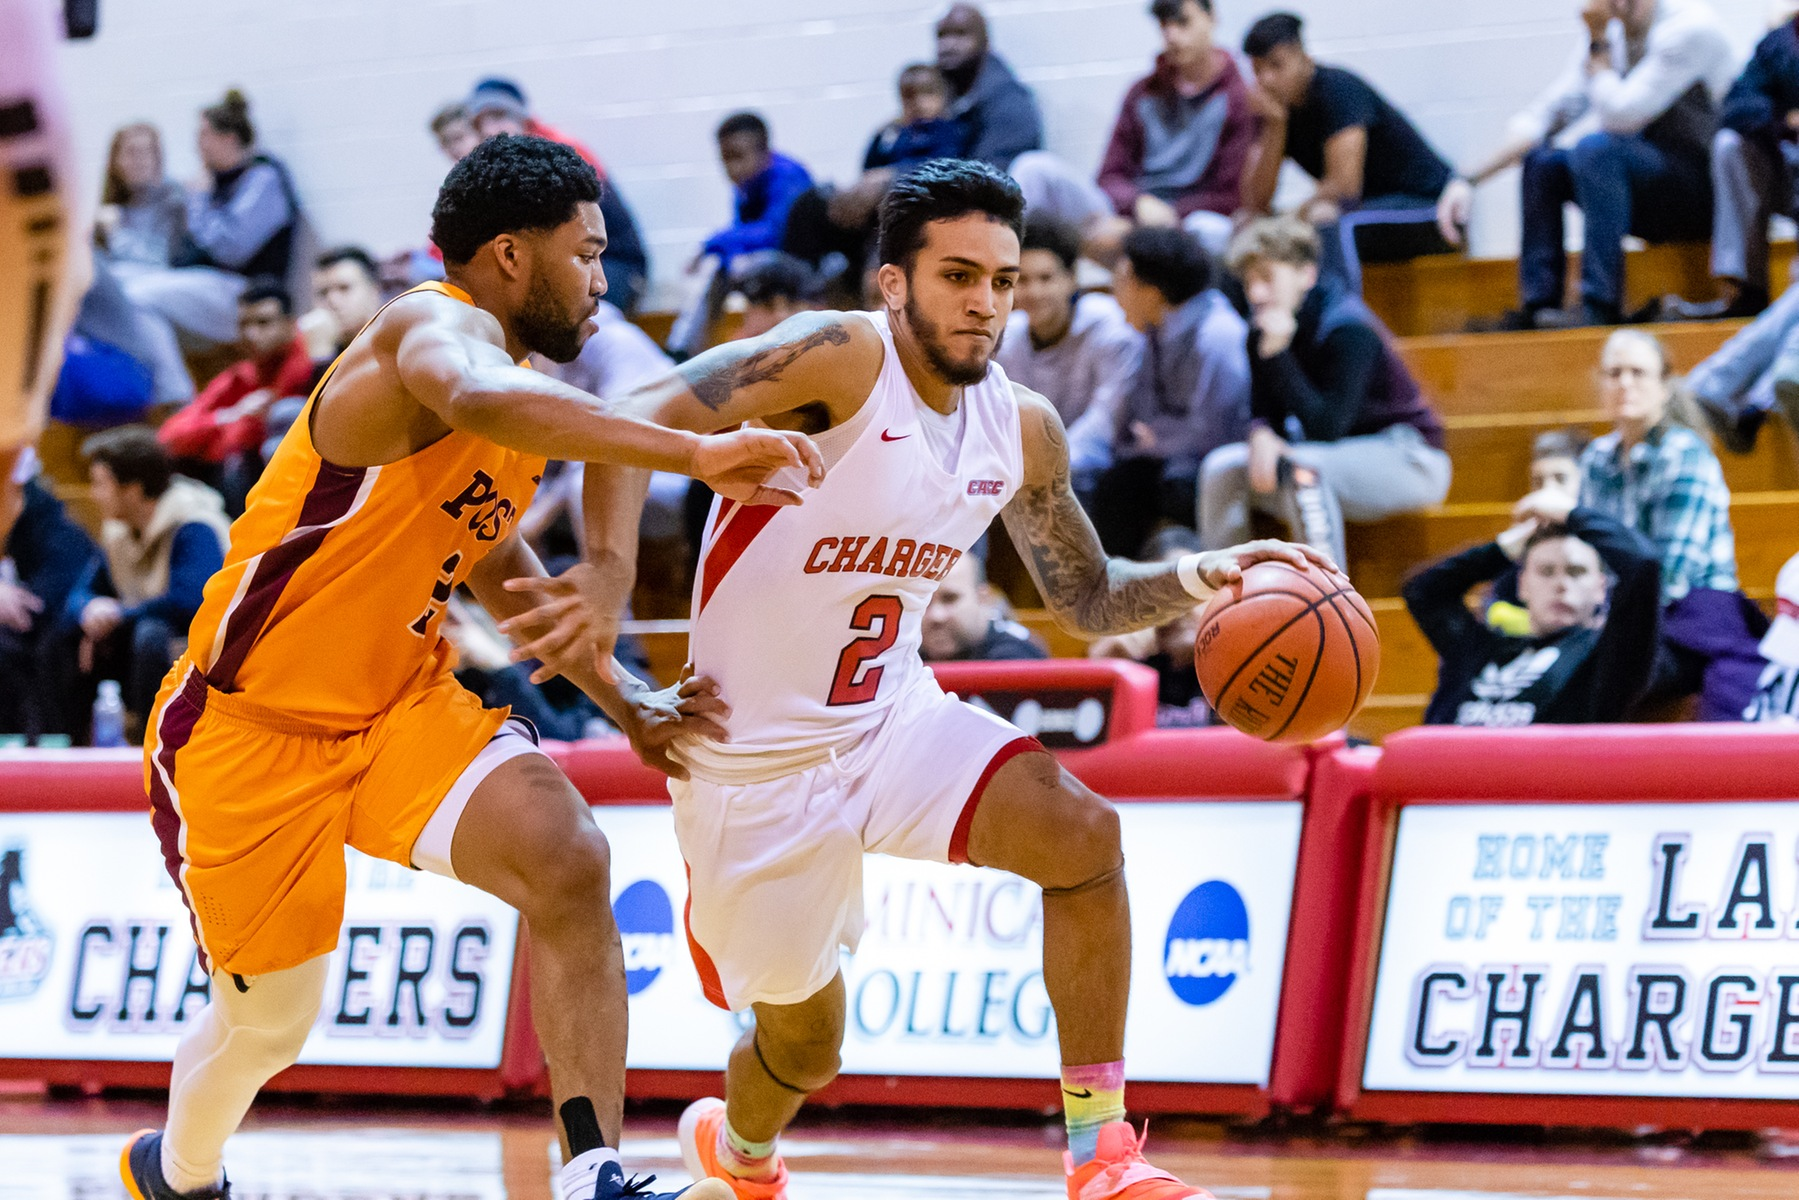 LIGHTNING RALLY TO UPEND MEN'S BASKETBALL